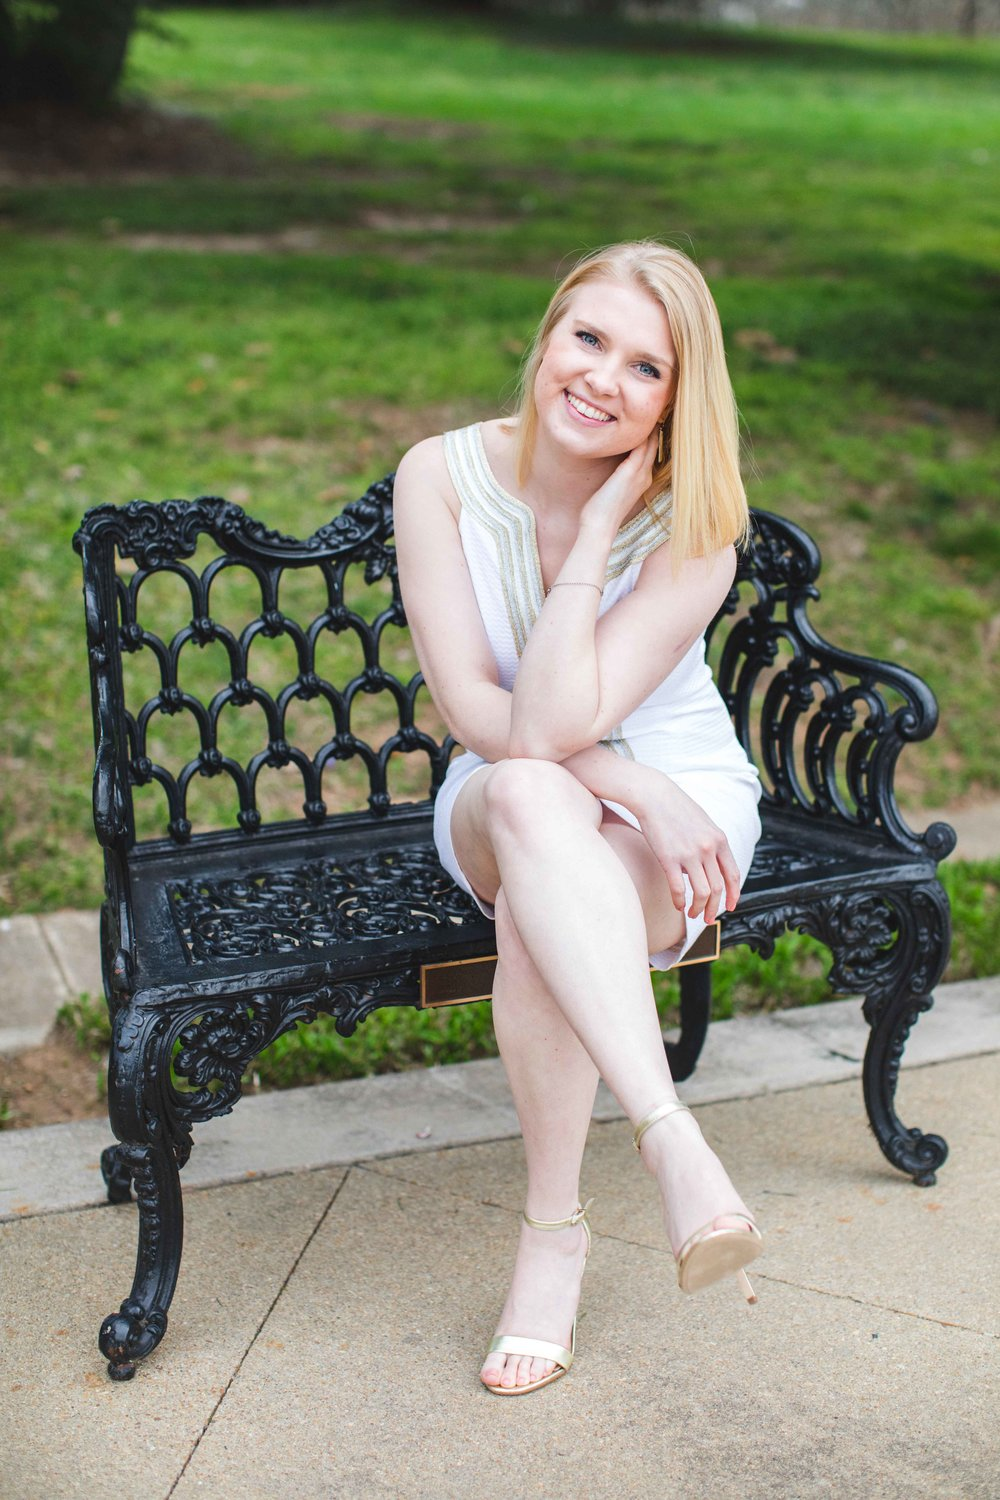 maymont-richmond-senior-portraits-vcu-graduation-richmond-wedding-photographer-13.jpg